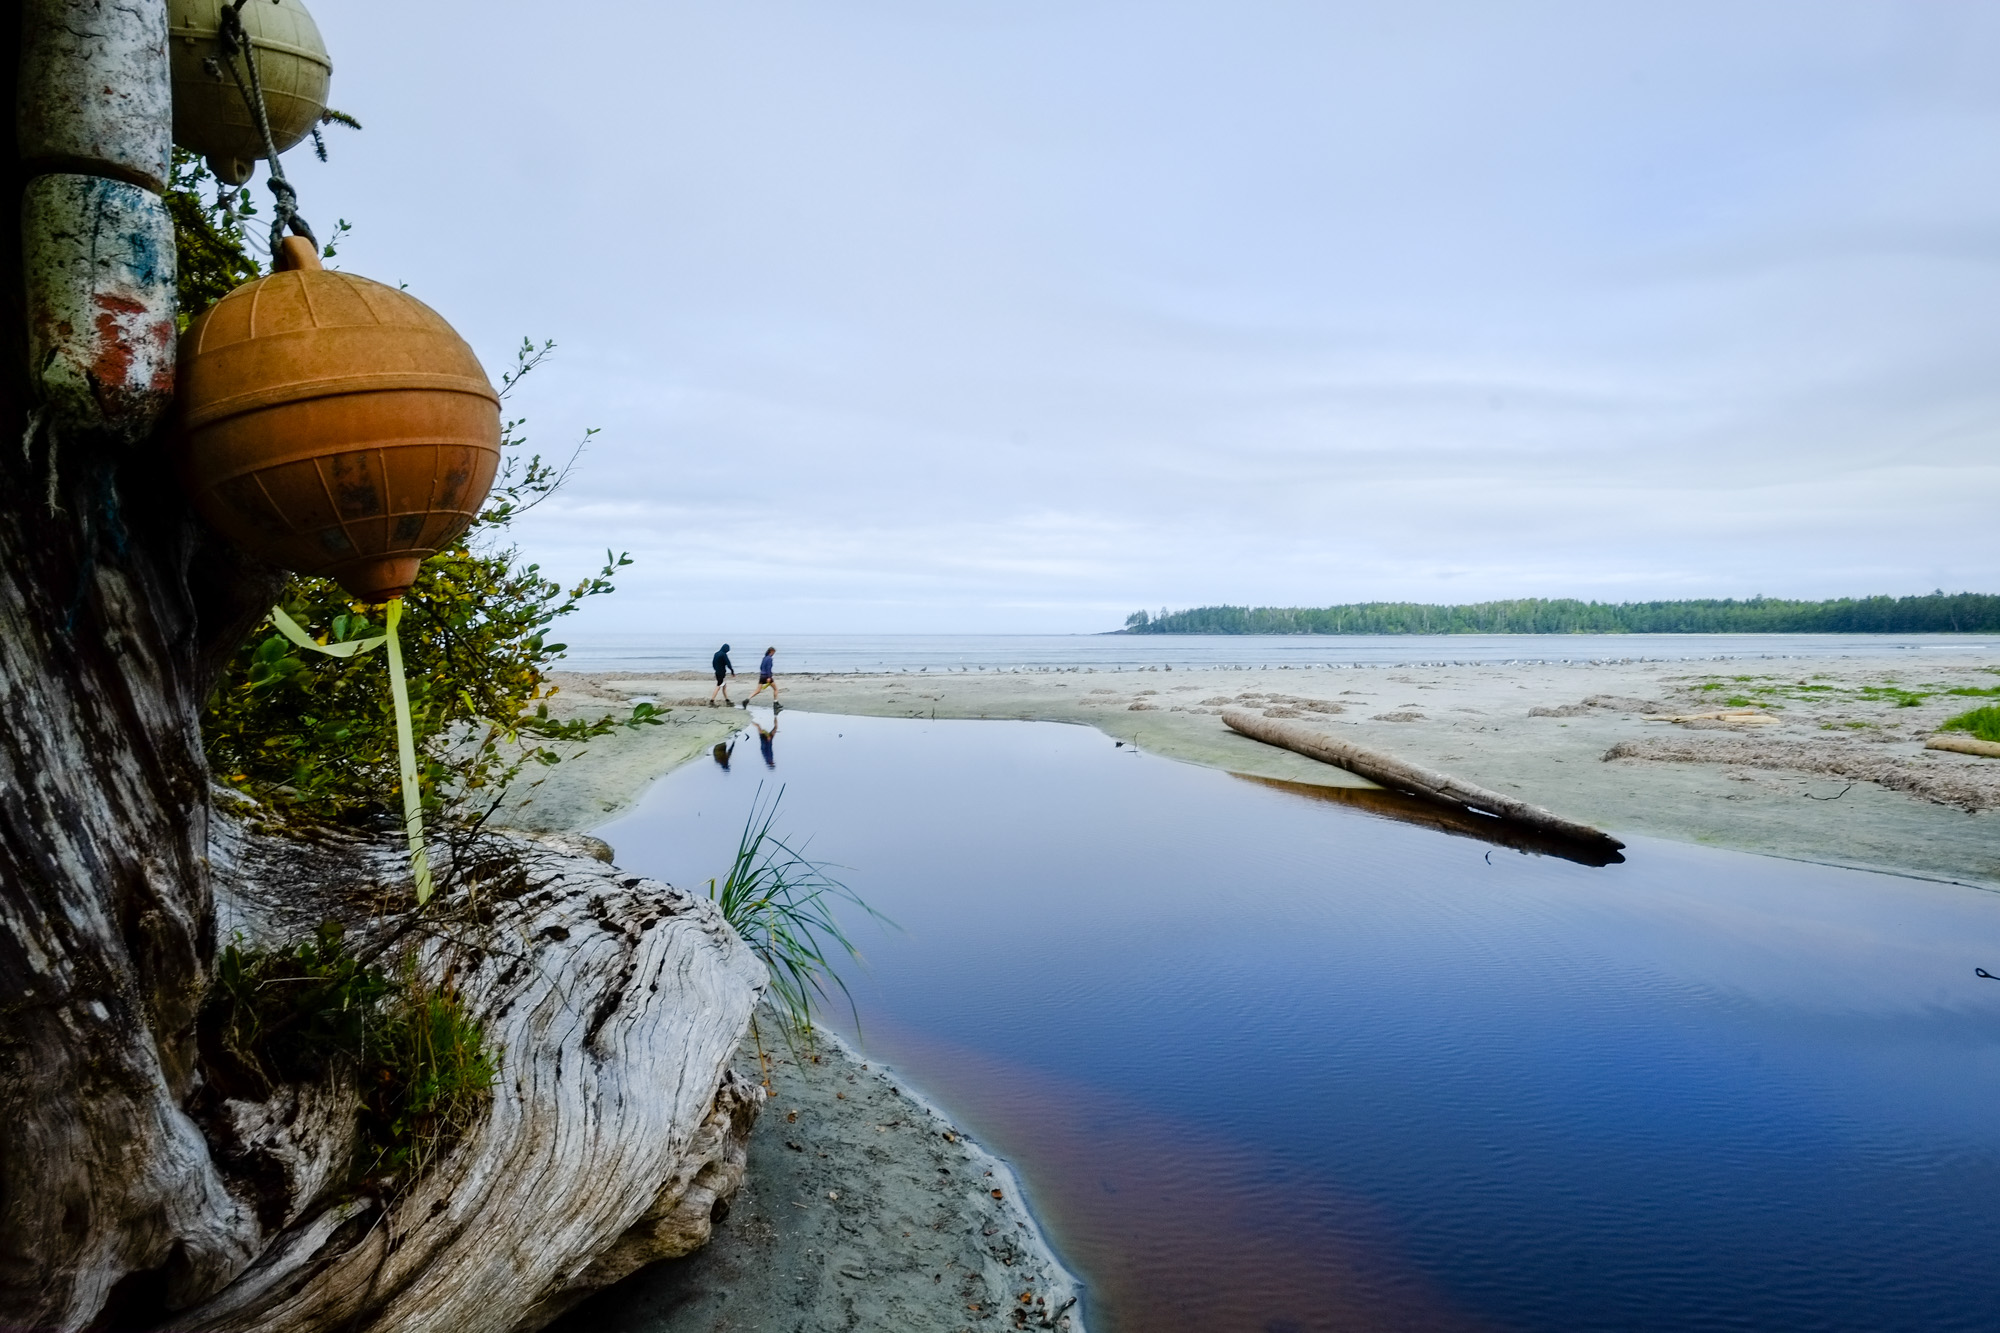 A creek reflects two hikers on Nels Bight, Cape Scott.